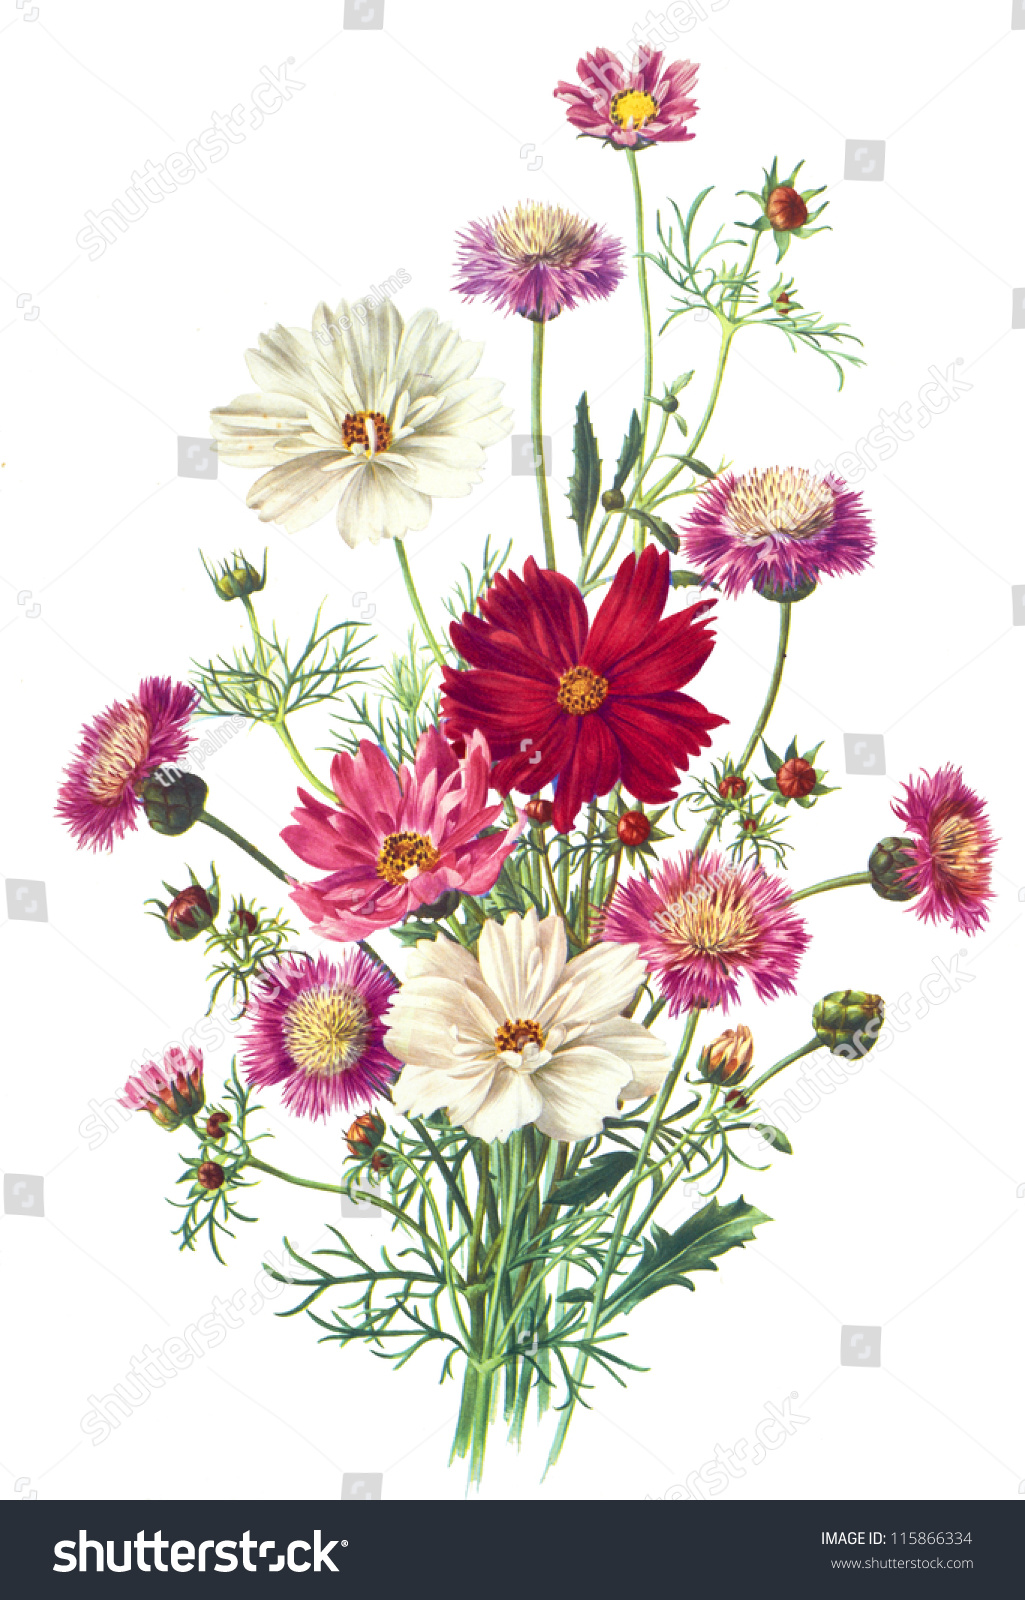 flower illustration stock illustration 115866334